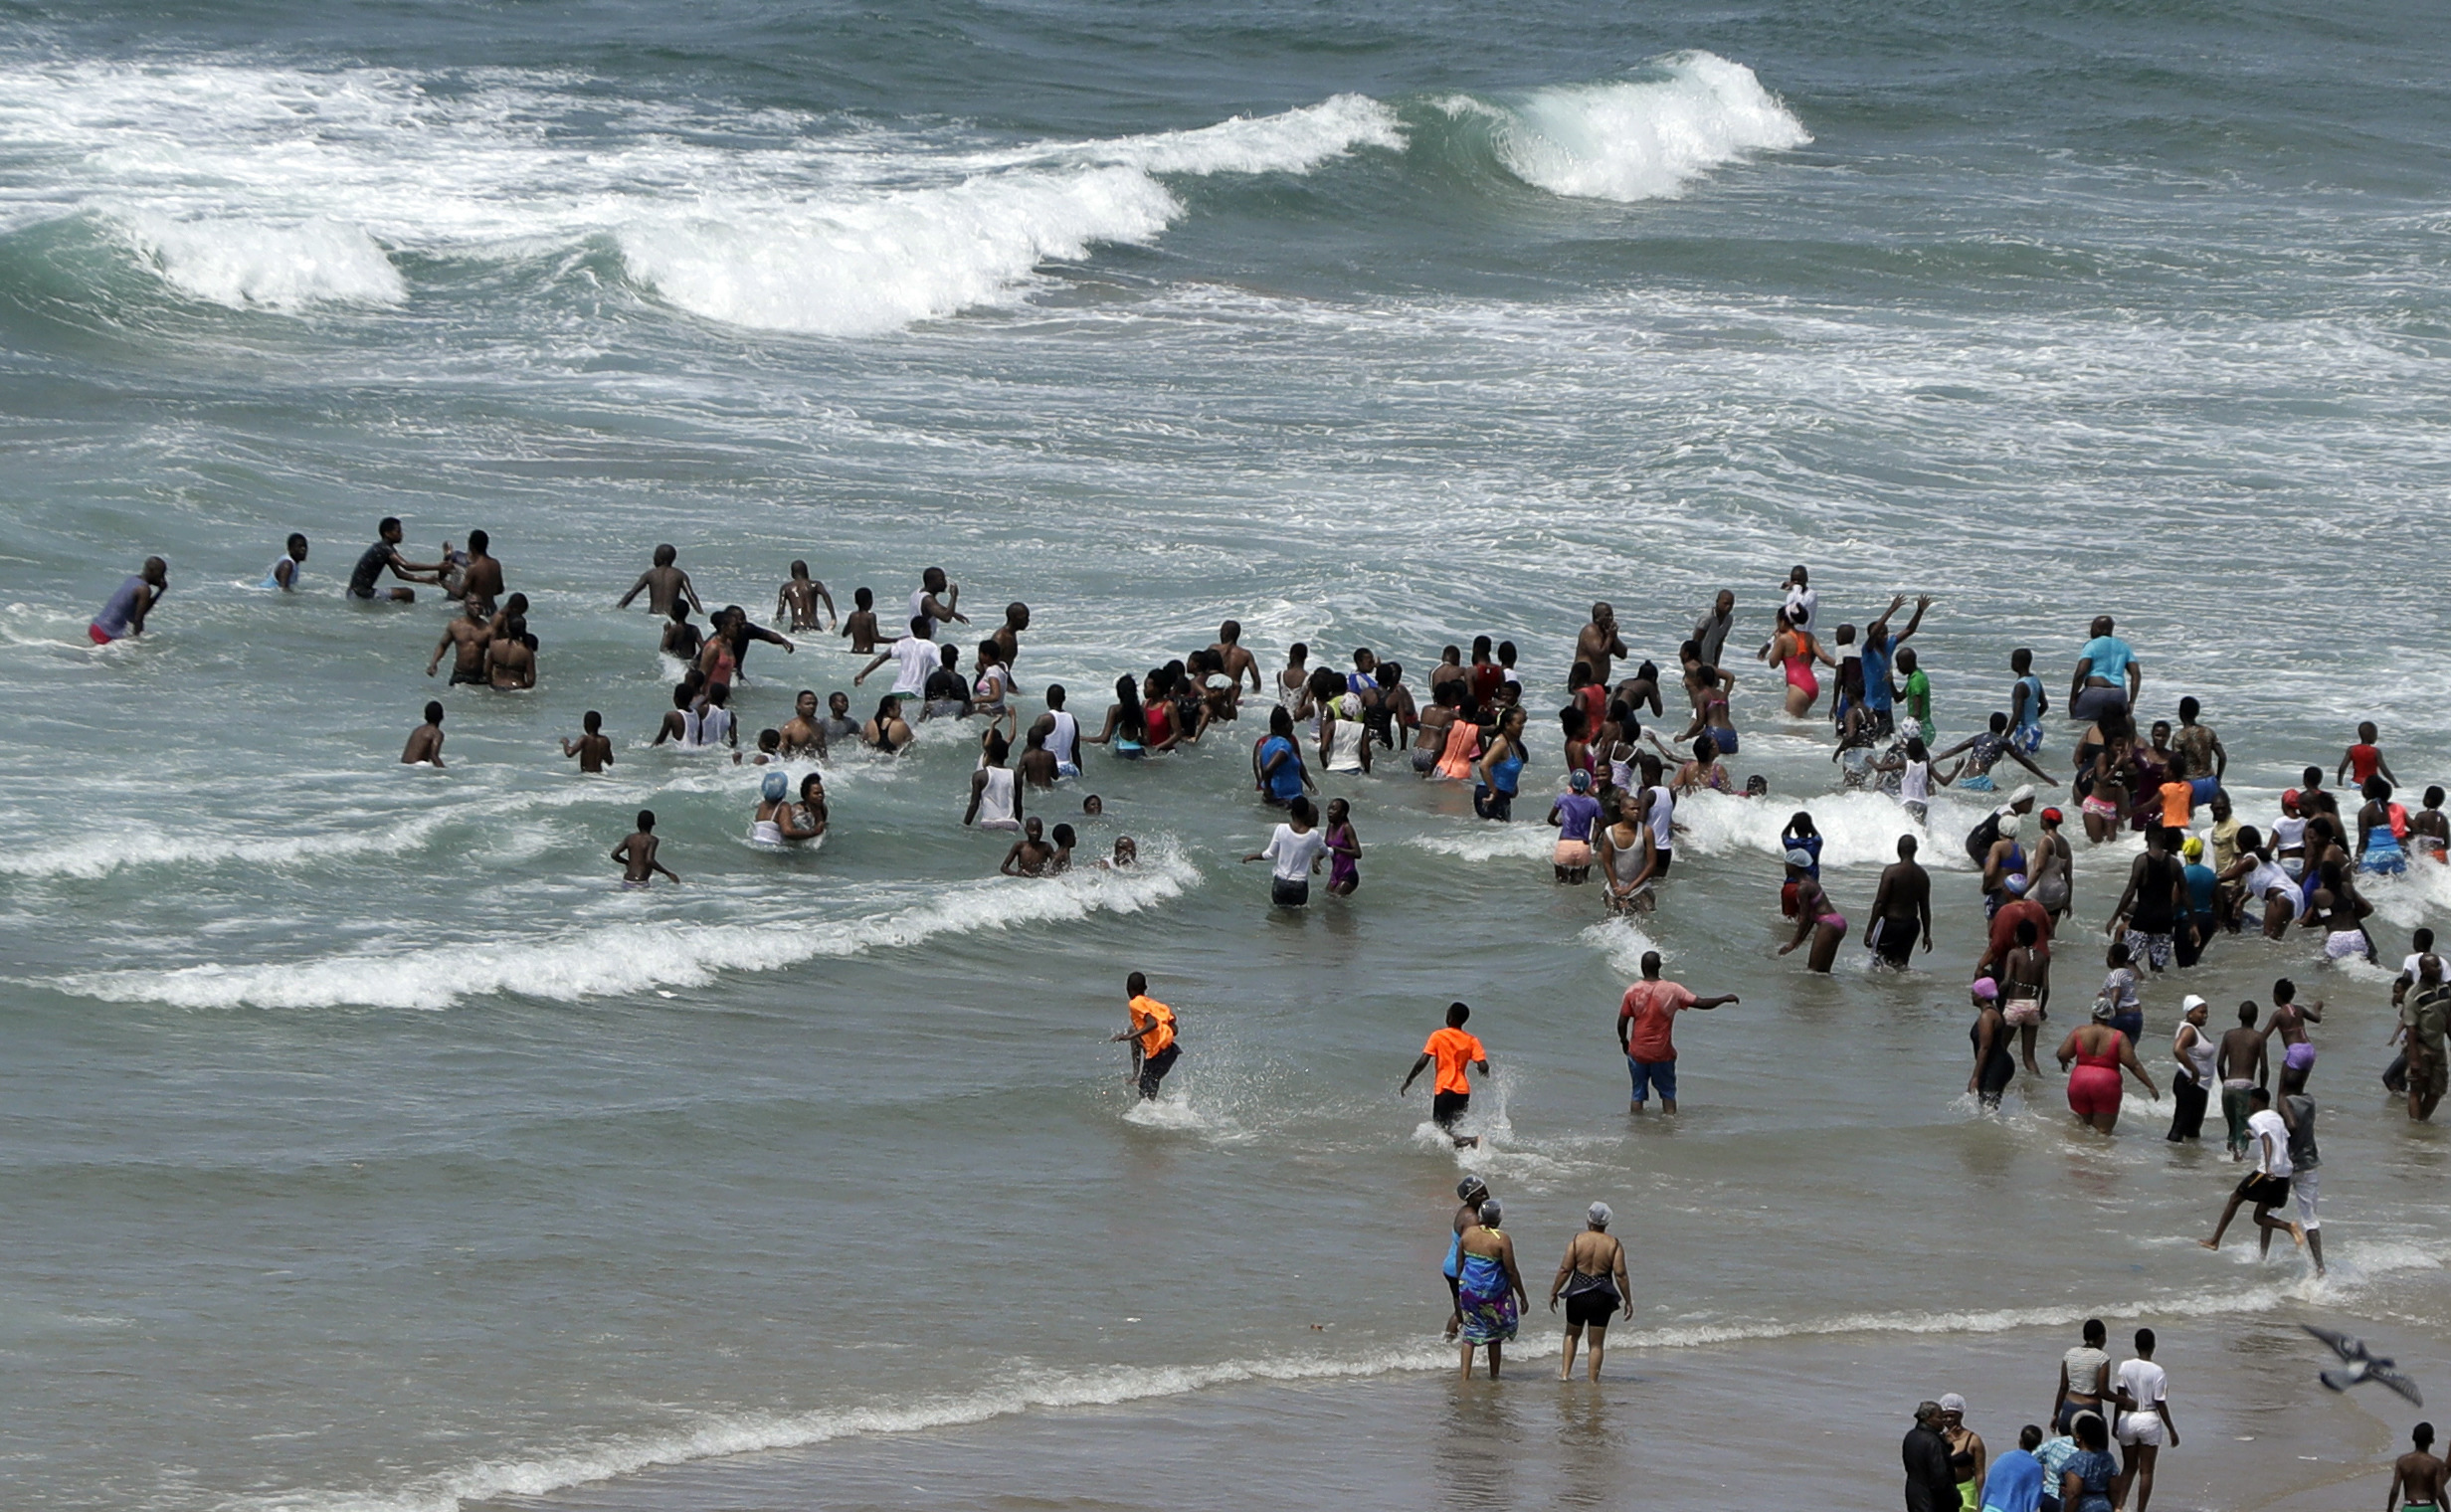 "<div class=""meta image-caption""><div class=""origin-logo origin-image ap""><span>AP</span></div><span class=""caption-text"">Locals and tourists swim and play on the beach in Durban, South Africa. (AP)</span></div>"